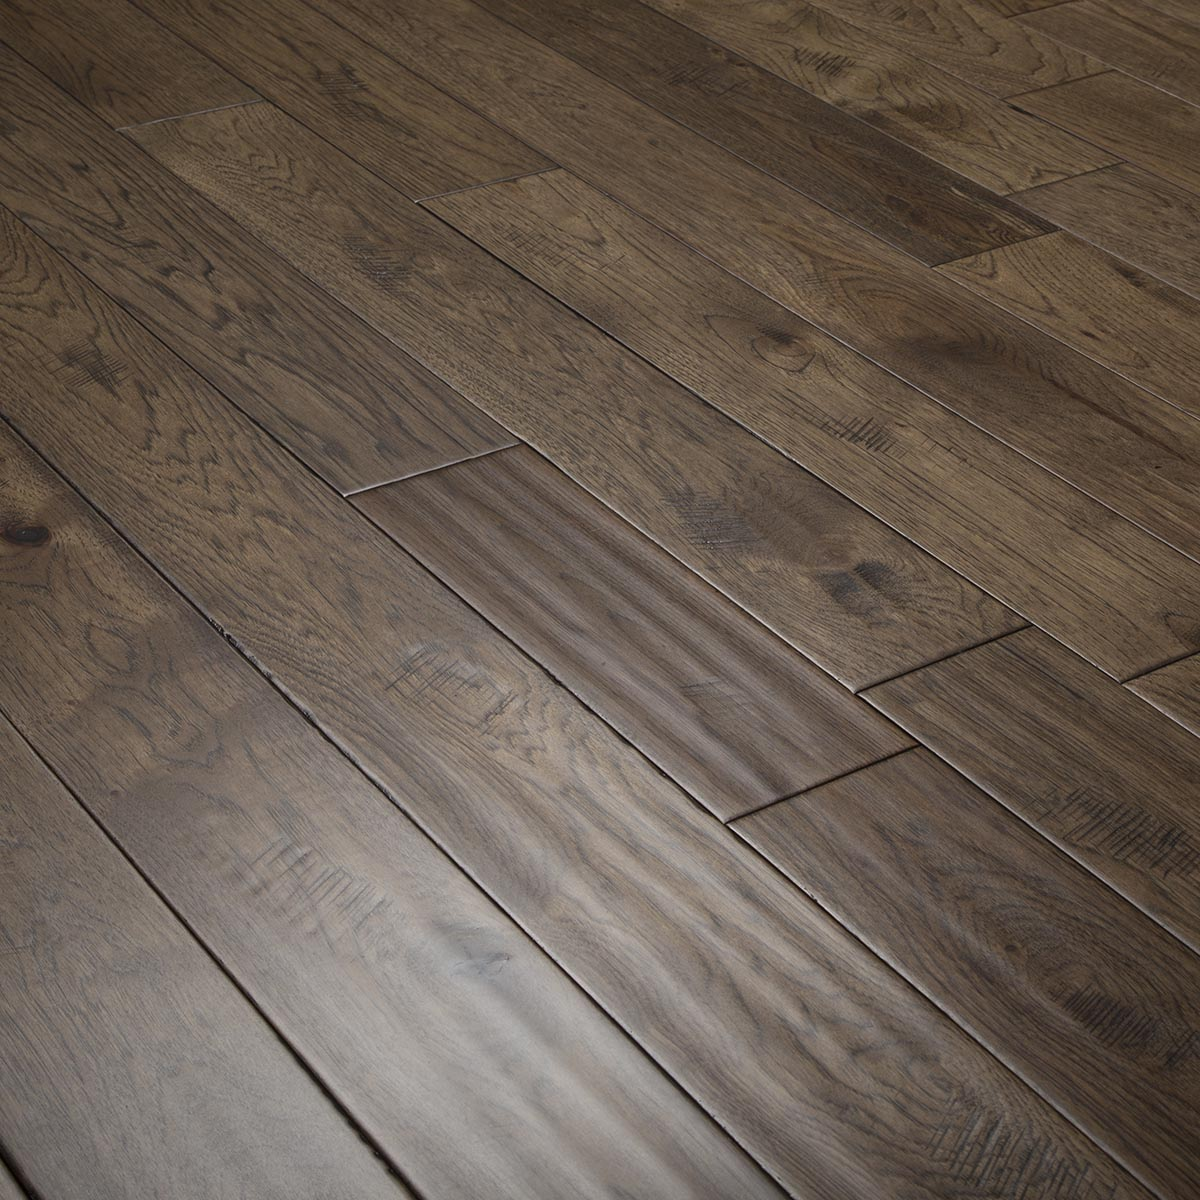 Hickory Asher Gray Hardwood Flooring Handscraped Abcd 4 9 Quot